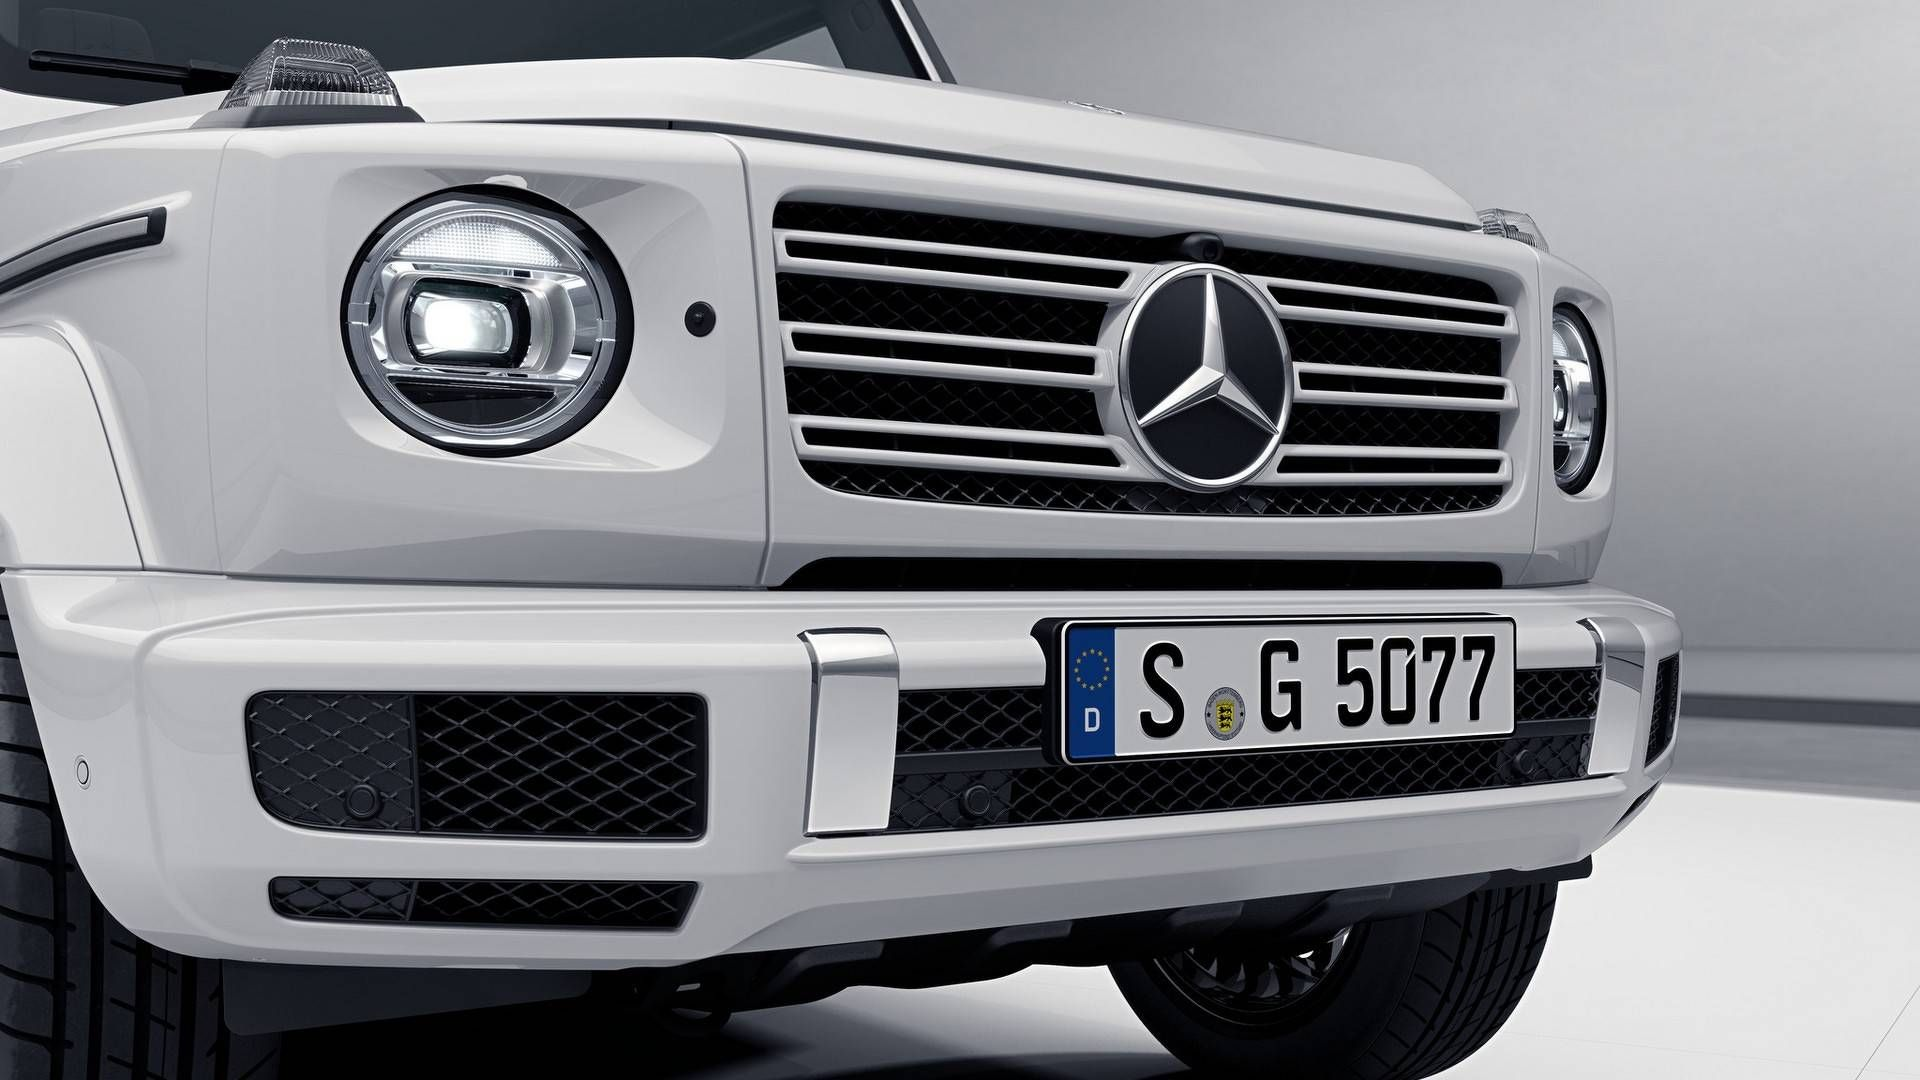 2019 Mercedes benz G class Diesel and Mpg